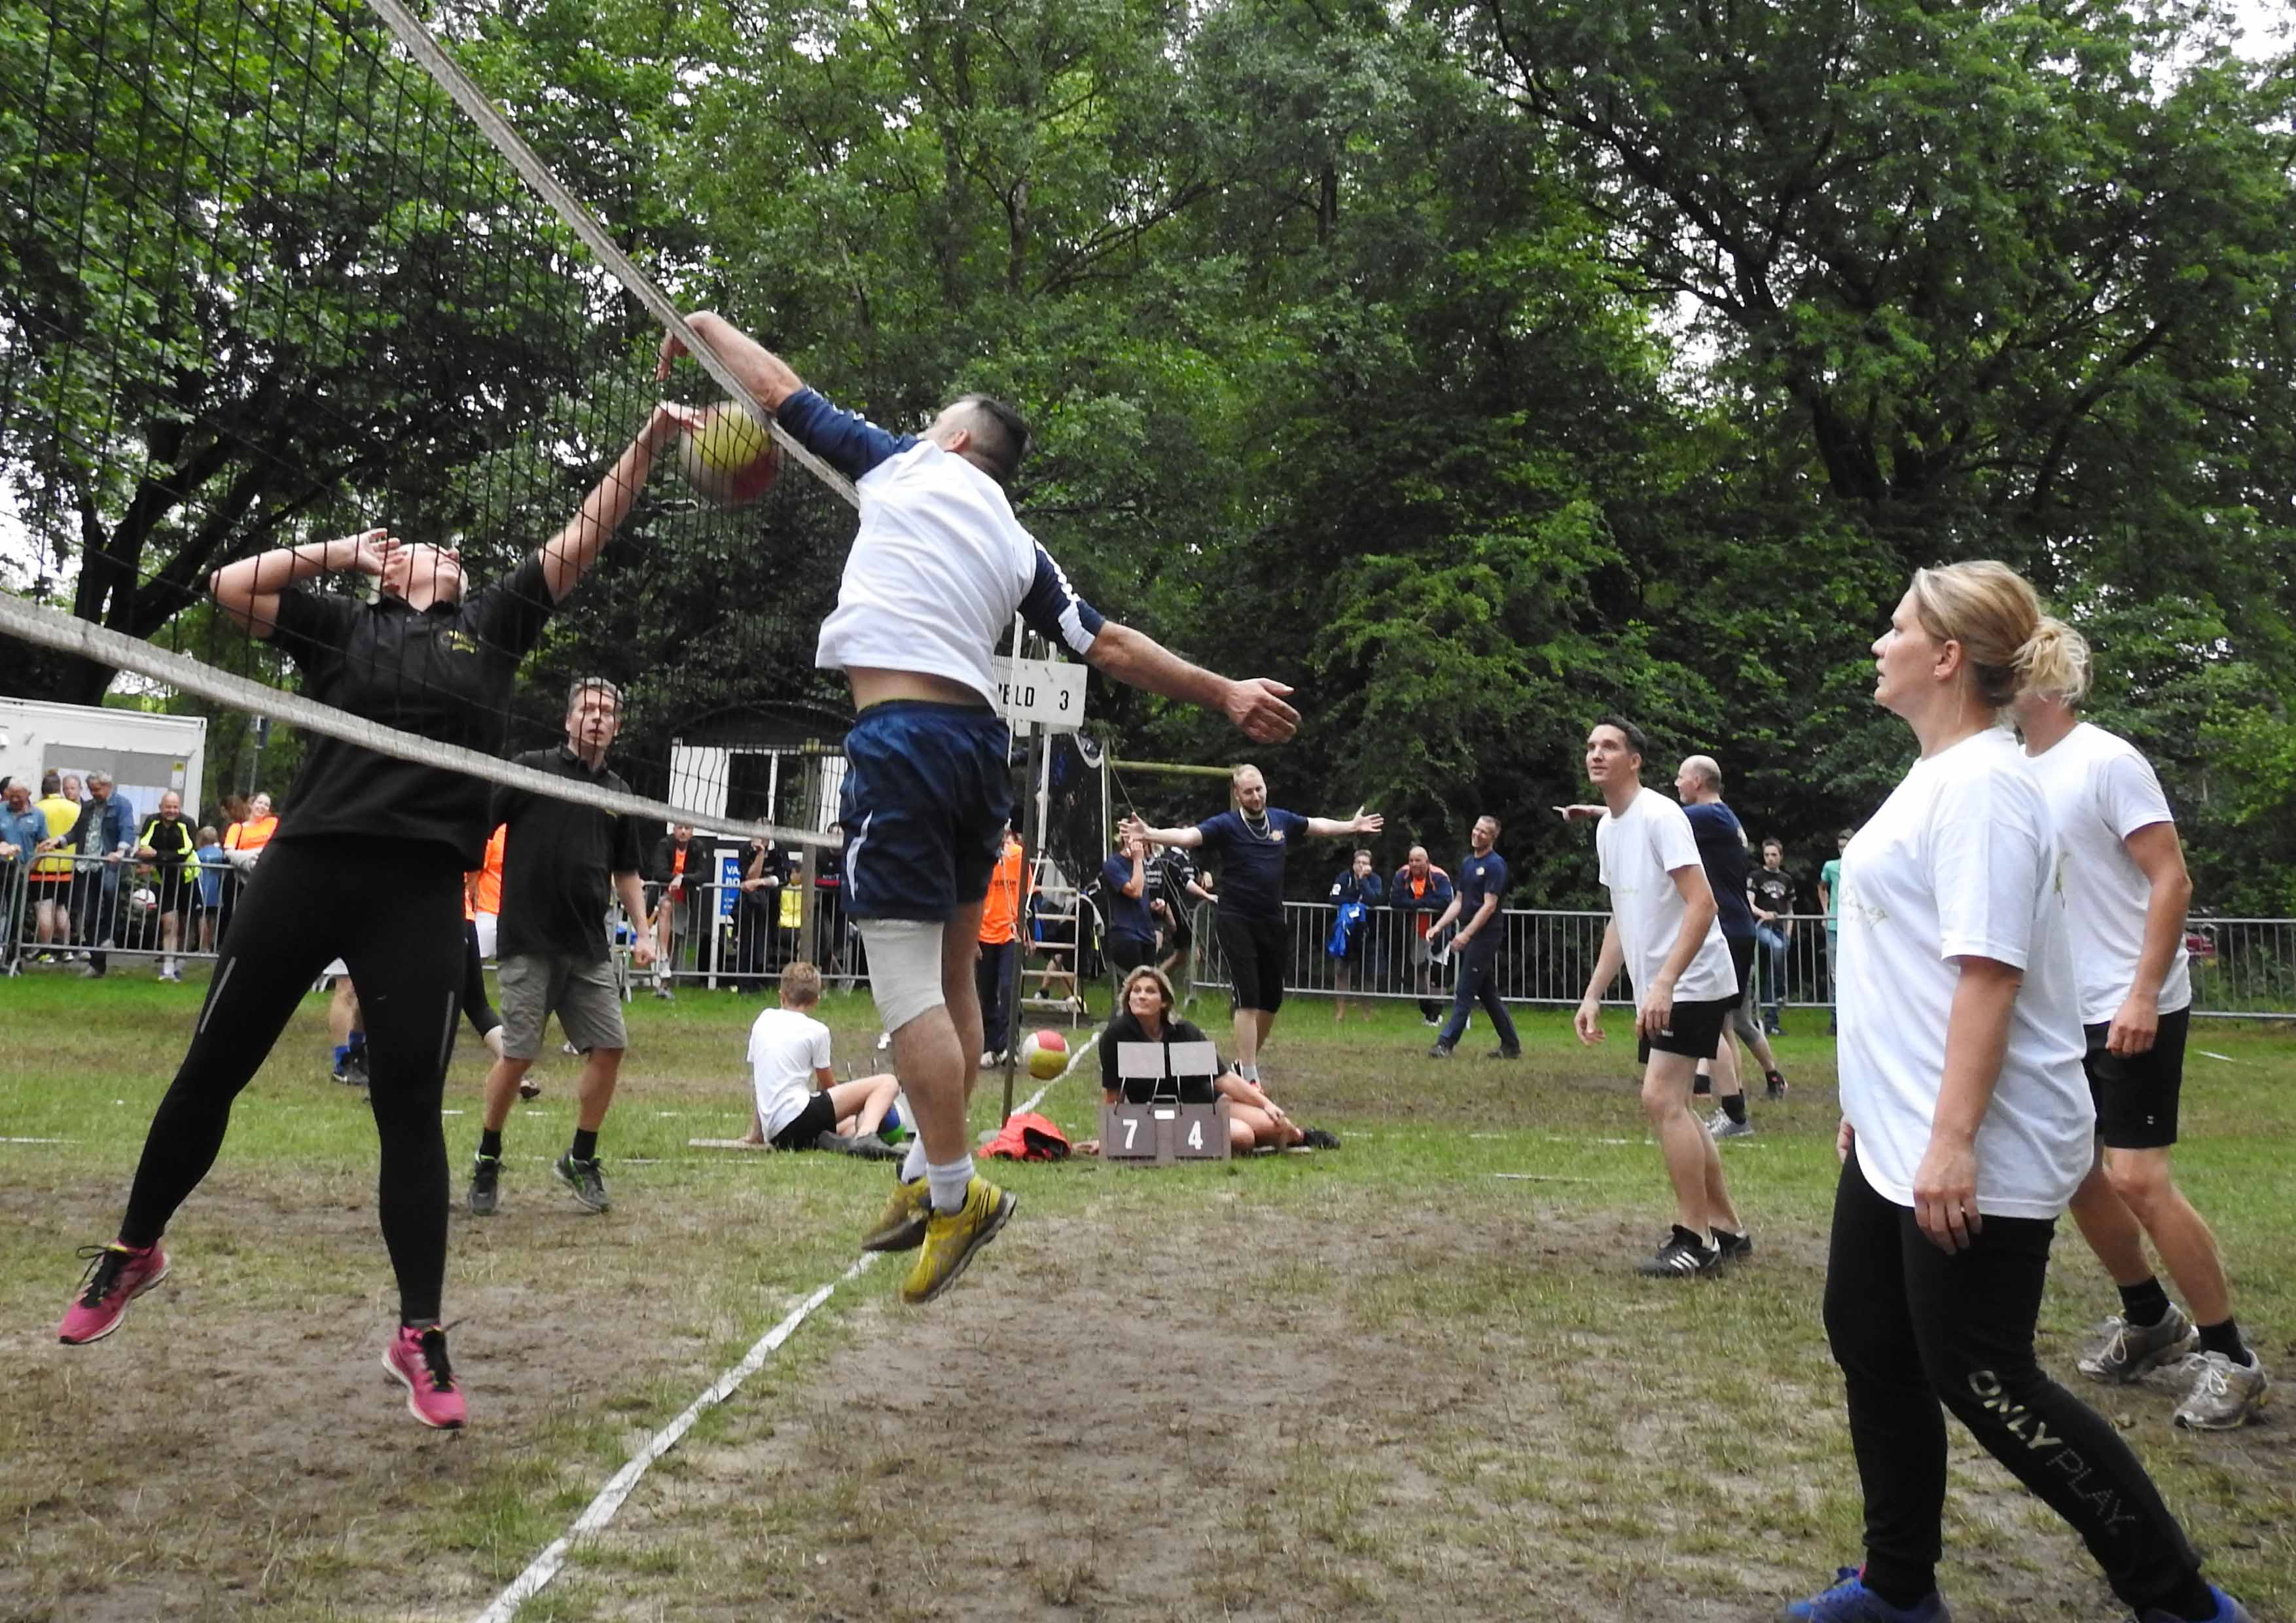 2017-06-29_BB_Straatvolleybal (24)